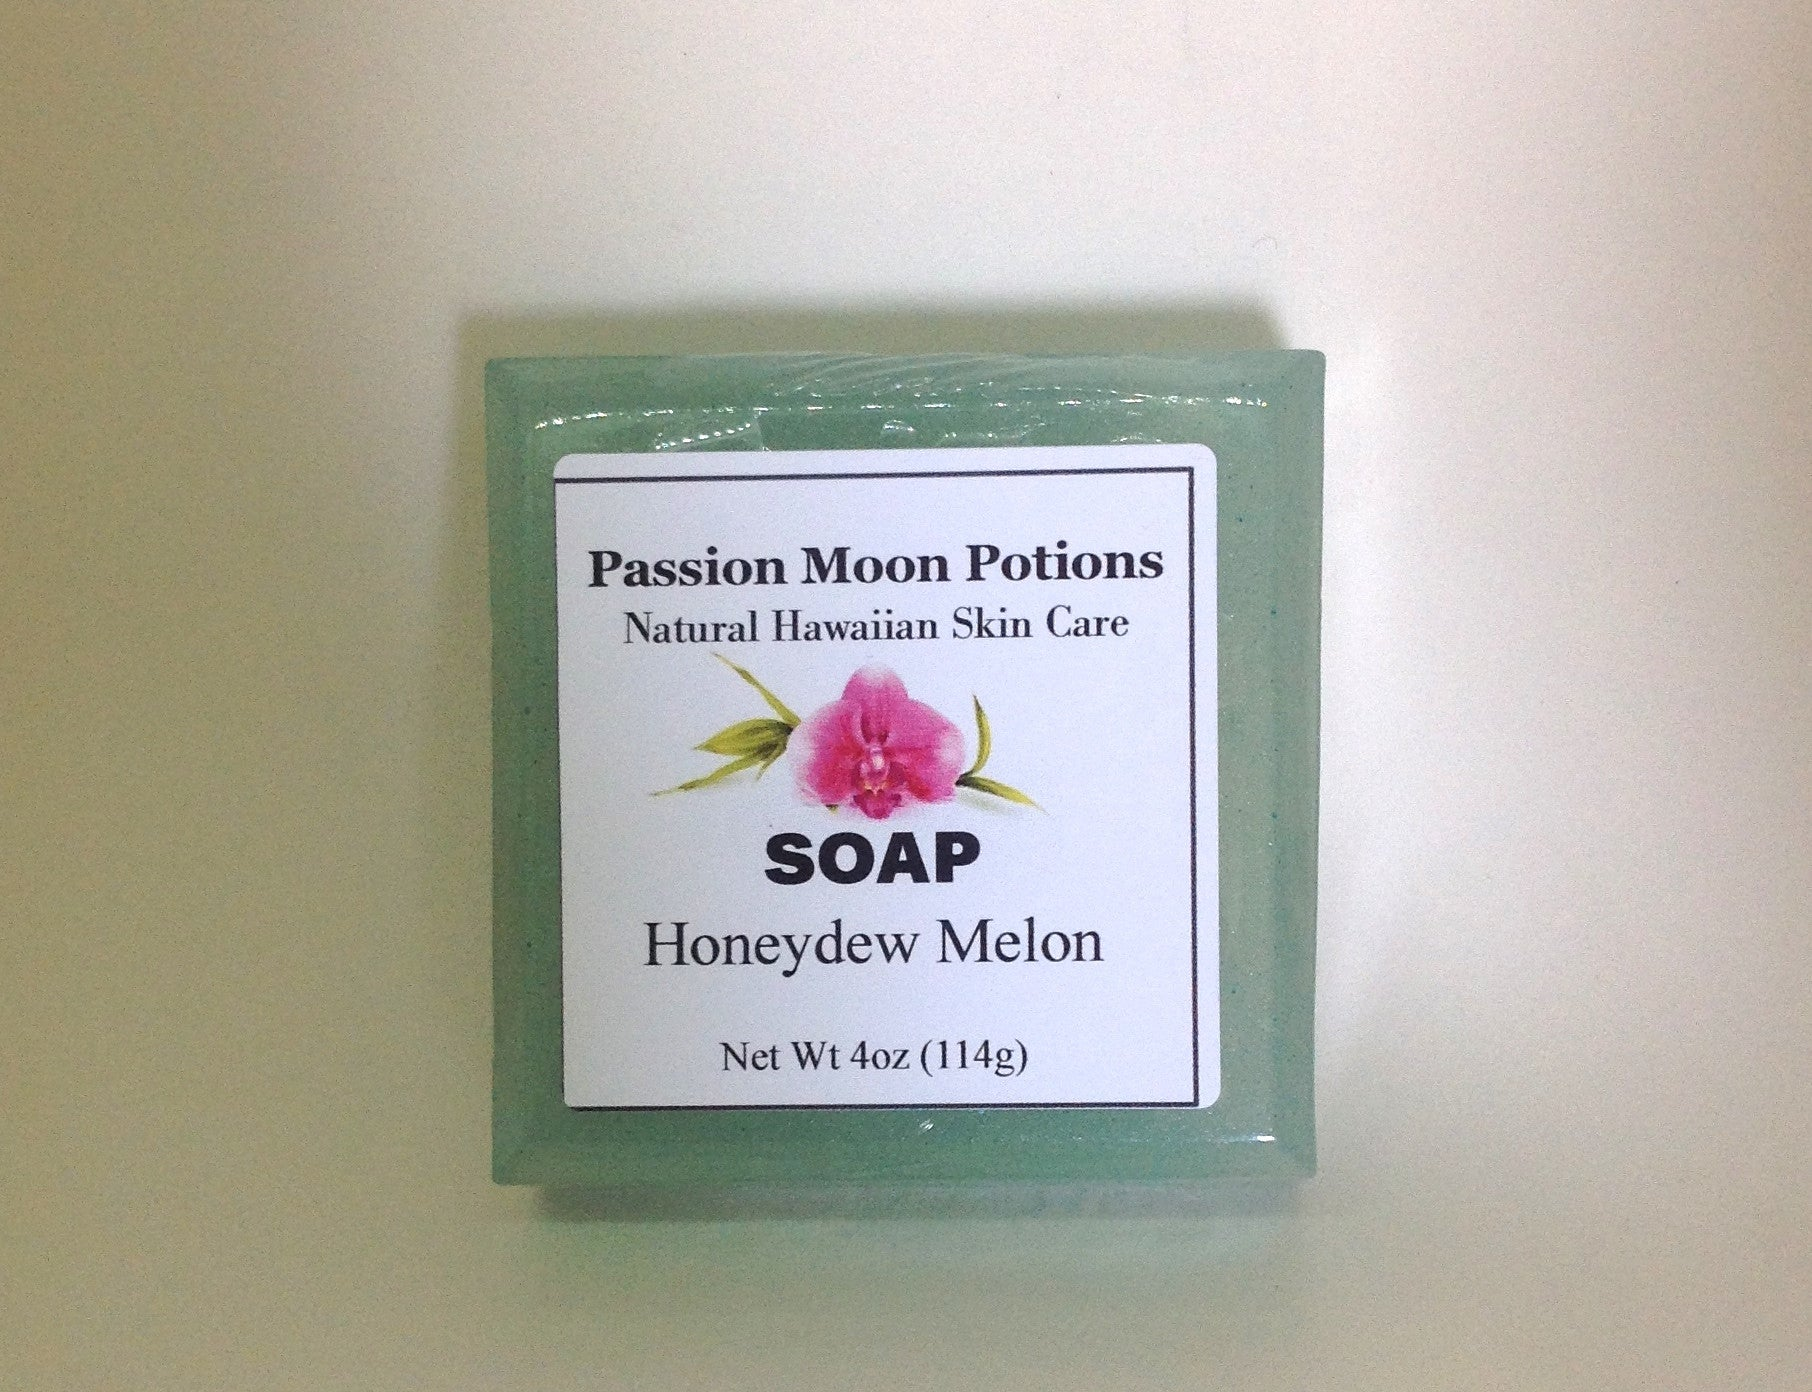 Honeydew Melon Soap - Passion Moon Potions - 1